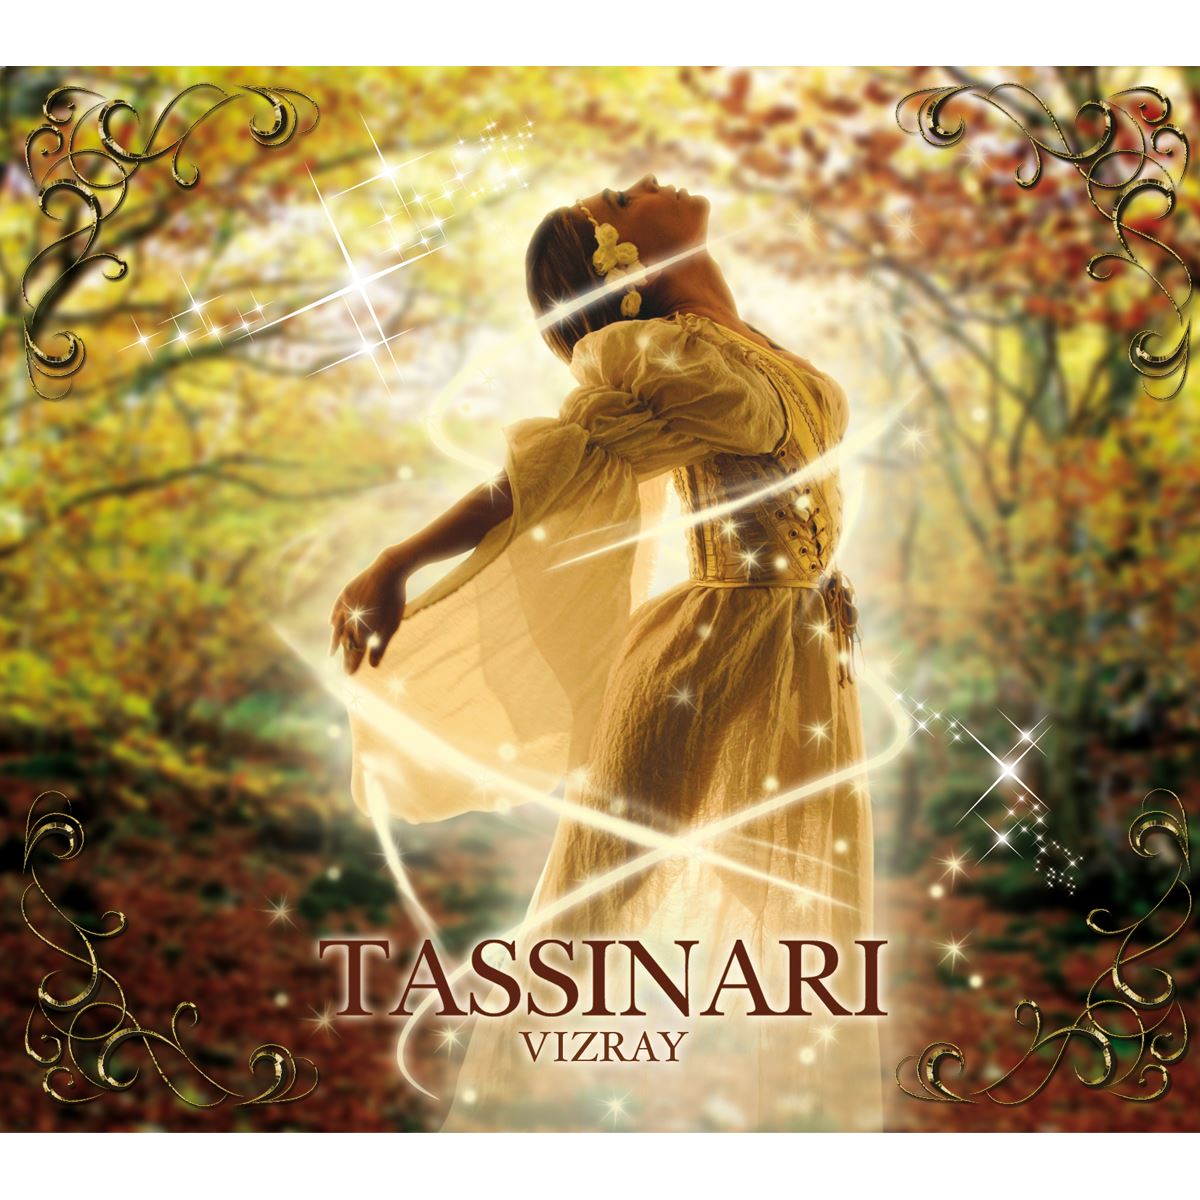 Cd tassinari-vizray  - Sanborns